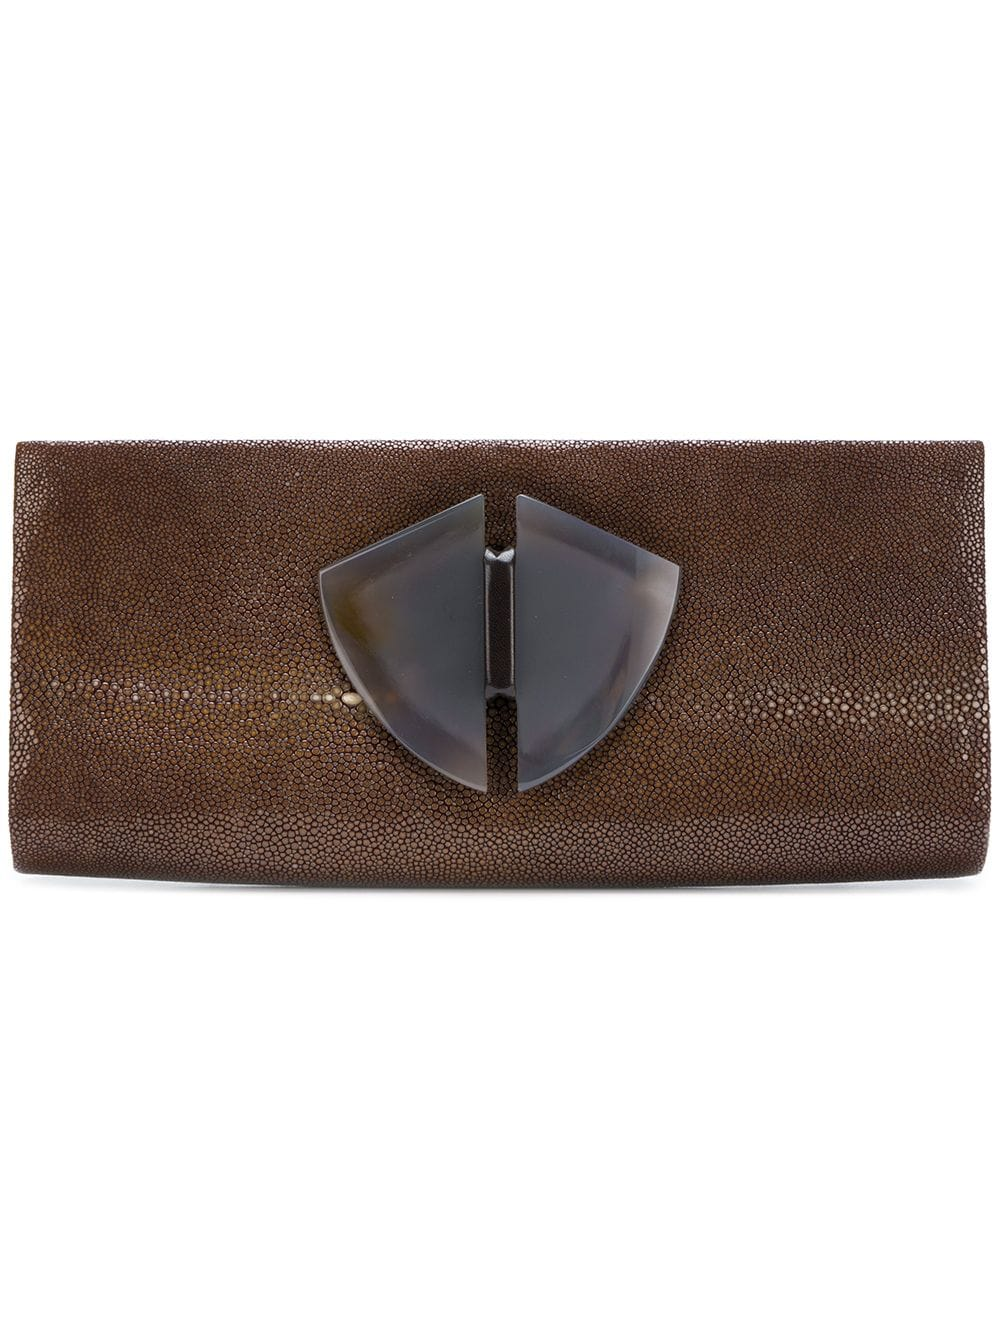 Giorgio Armani Pre-Owned Clutch in Kuvertform - Braun